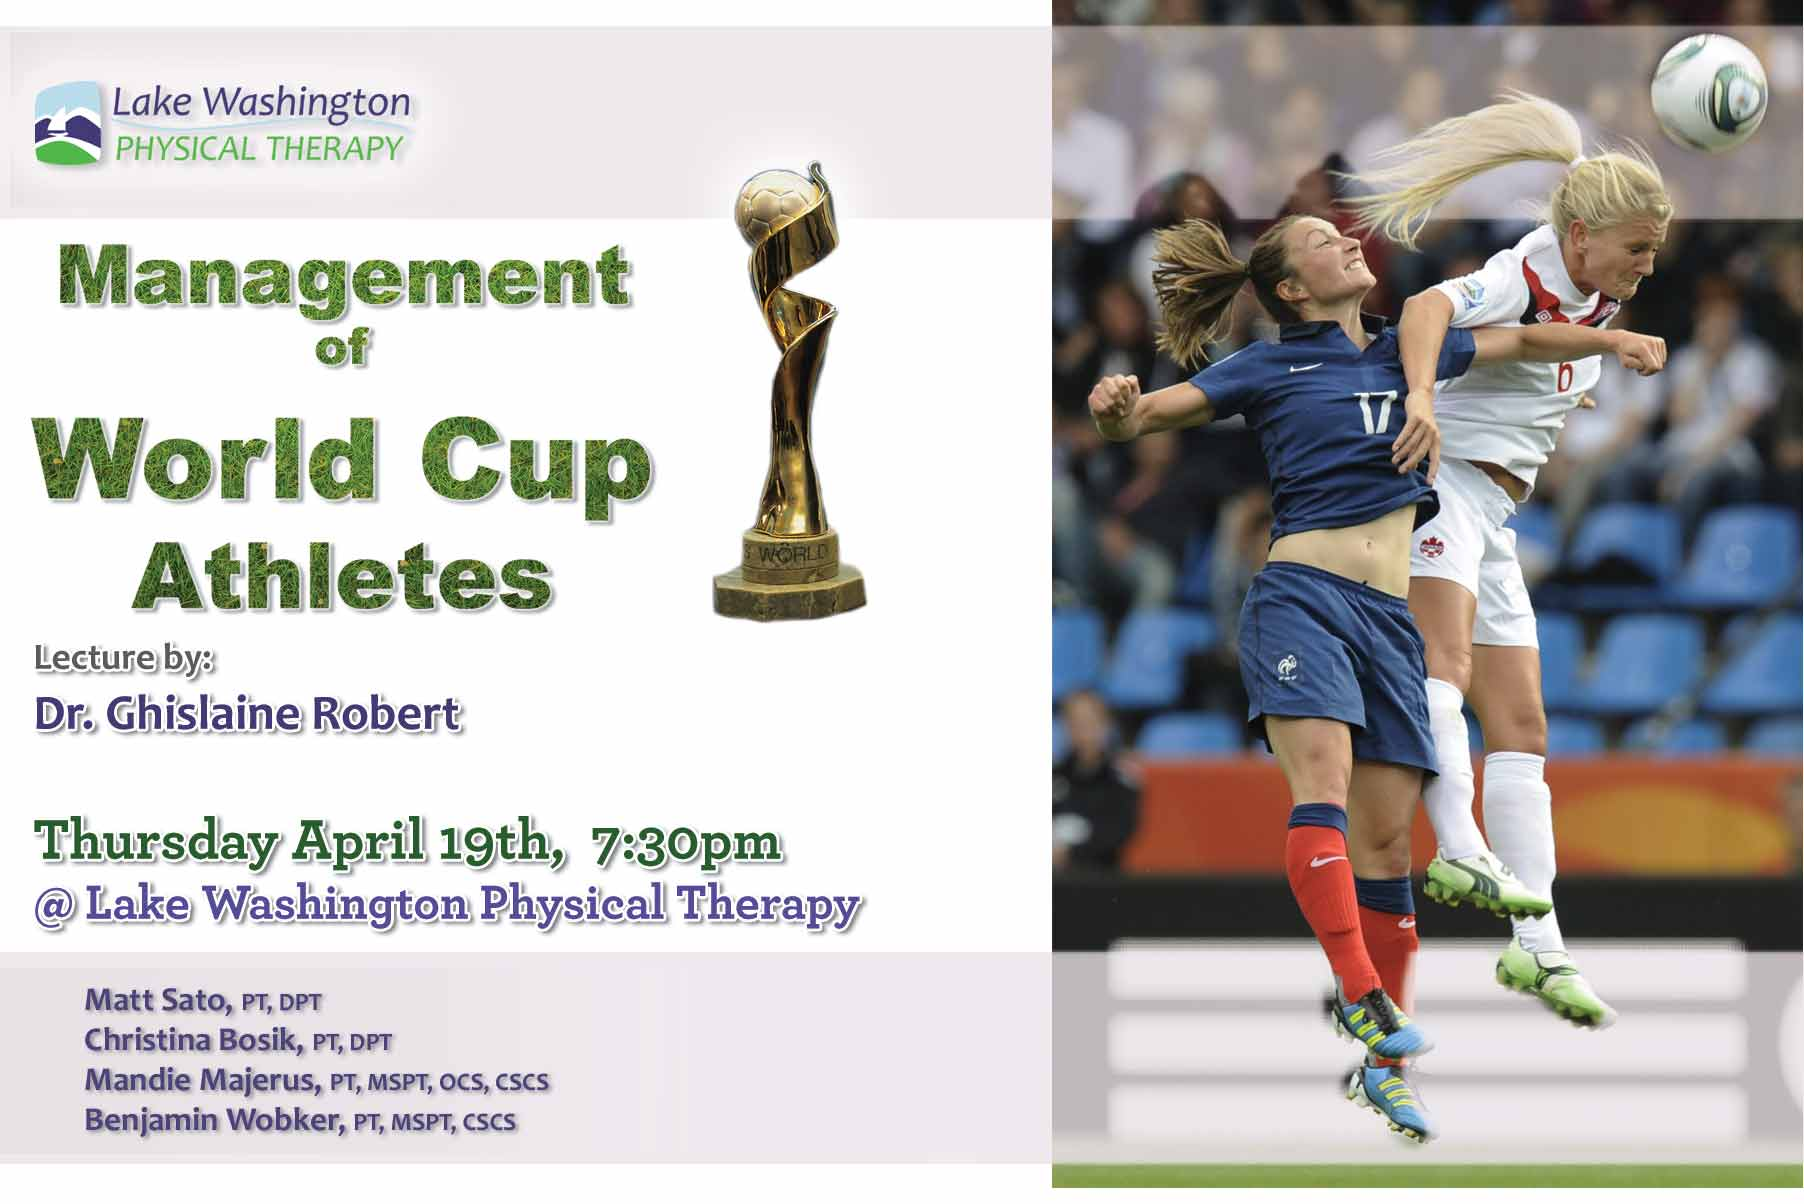 Dr. Ghislaine RobertWorld Cup Soccer - More on Dr. Robert (click here)